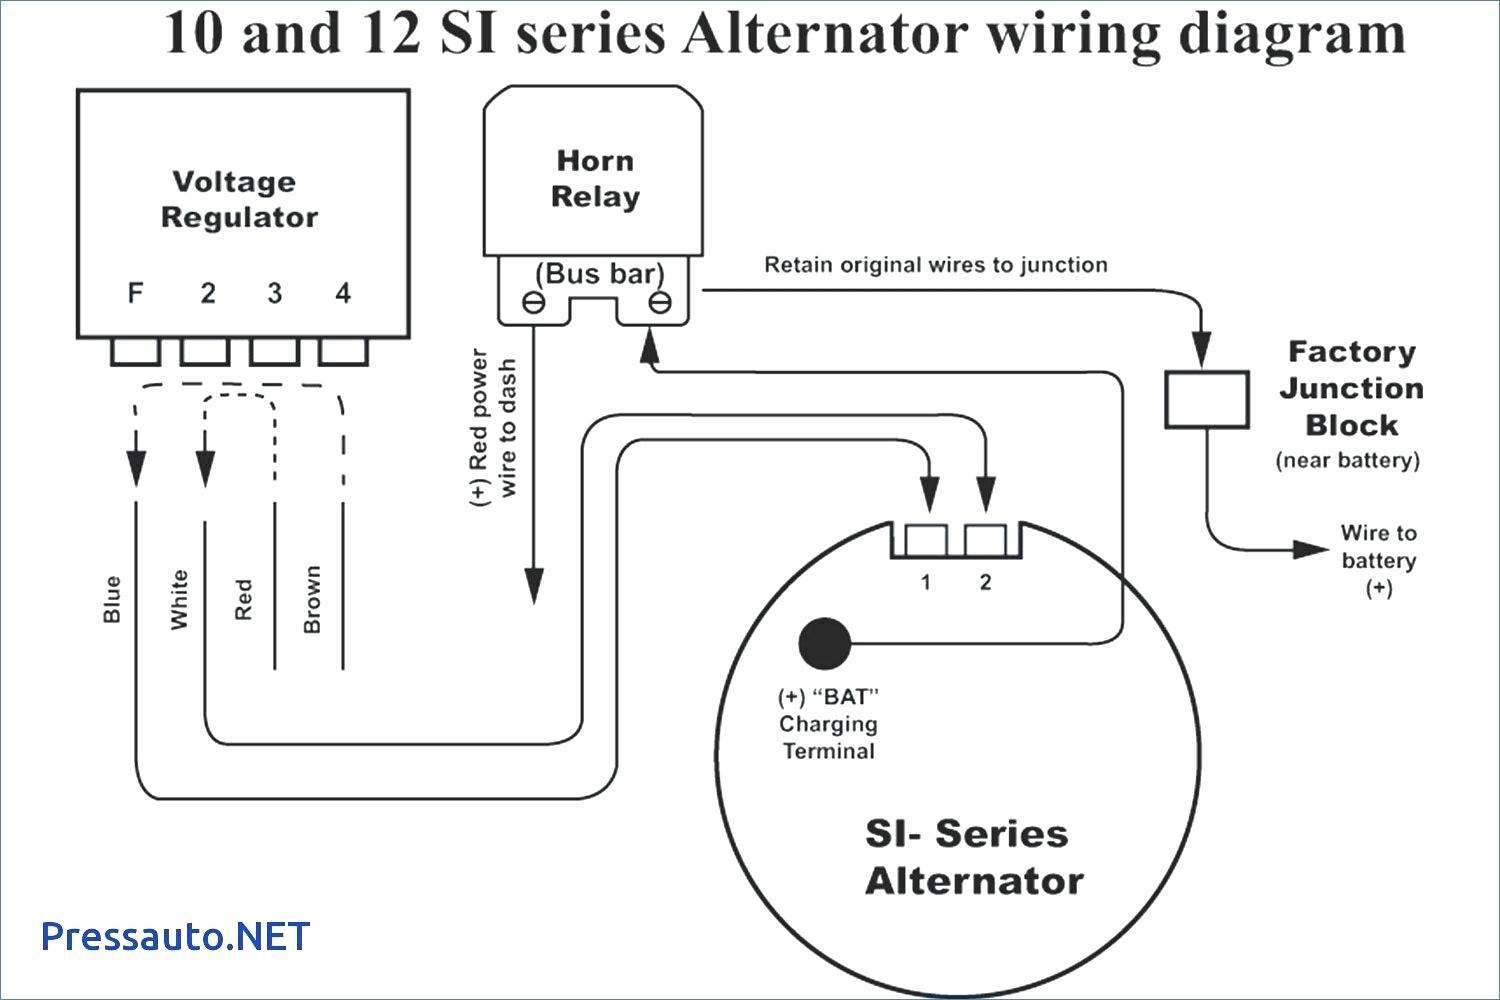 Motorola Alternator Regulator Wiring Diagram | Manual E-Books - Motorola Alternator Wiring Diagram